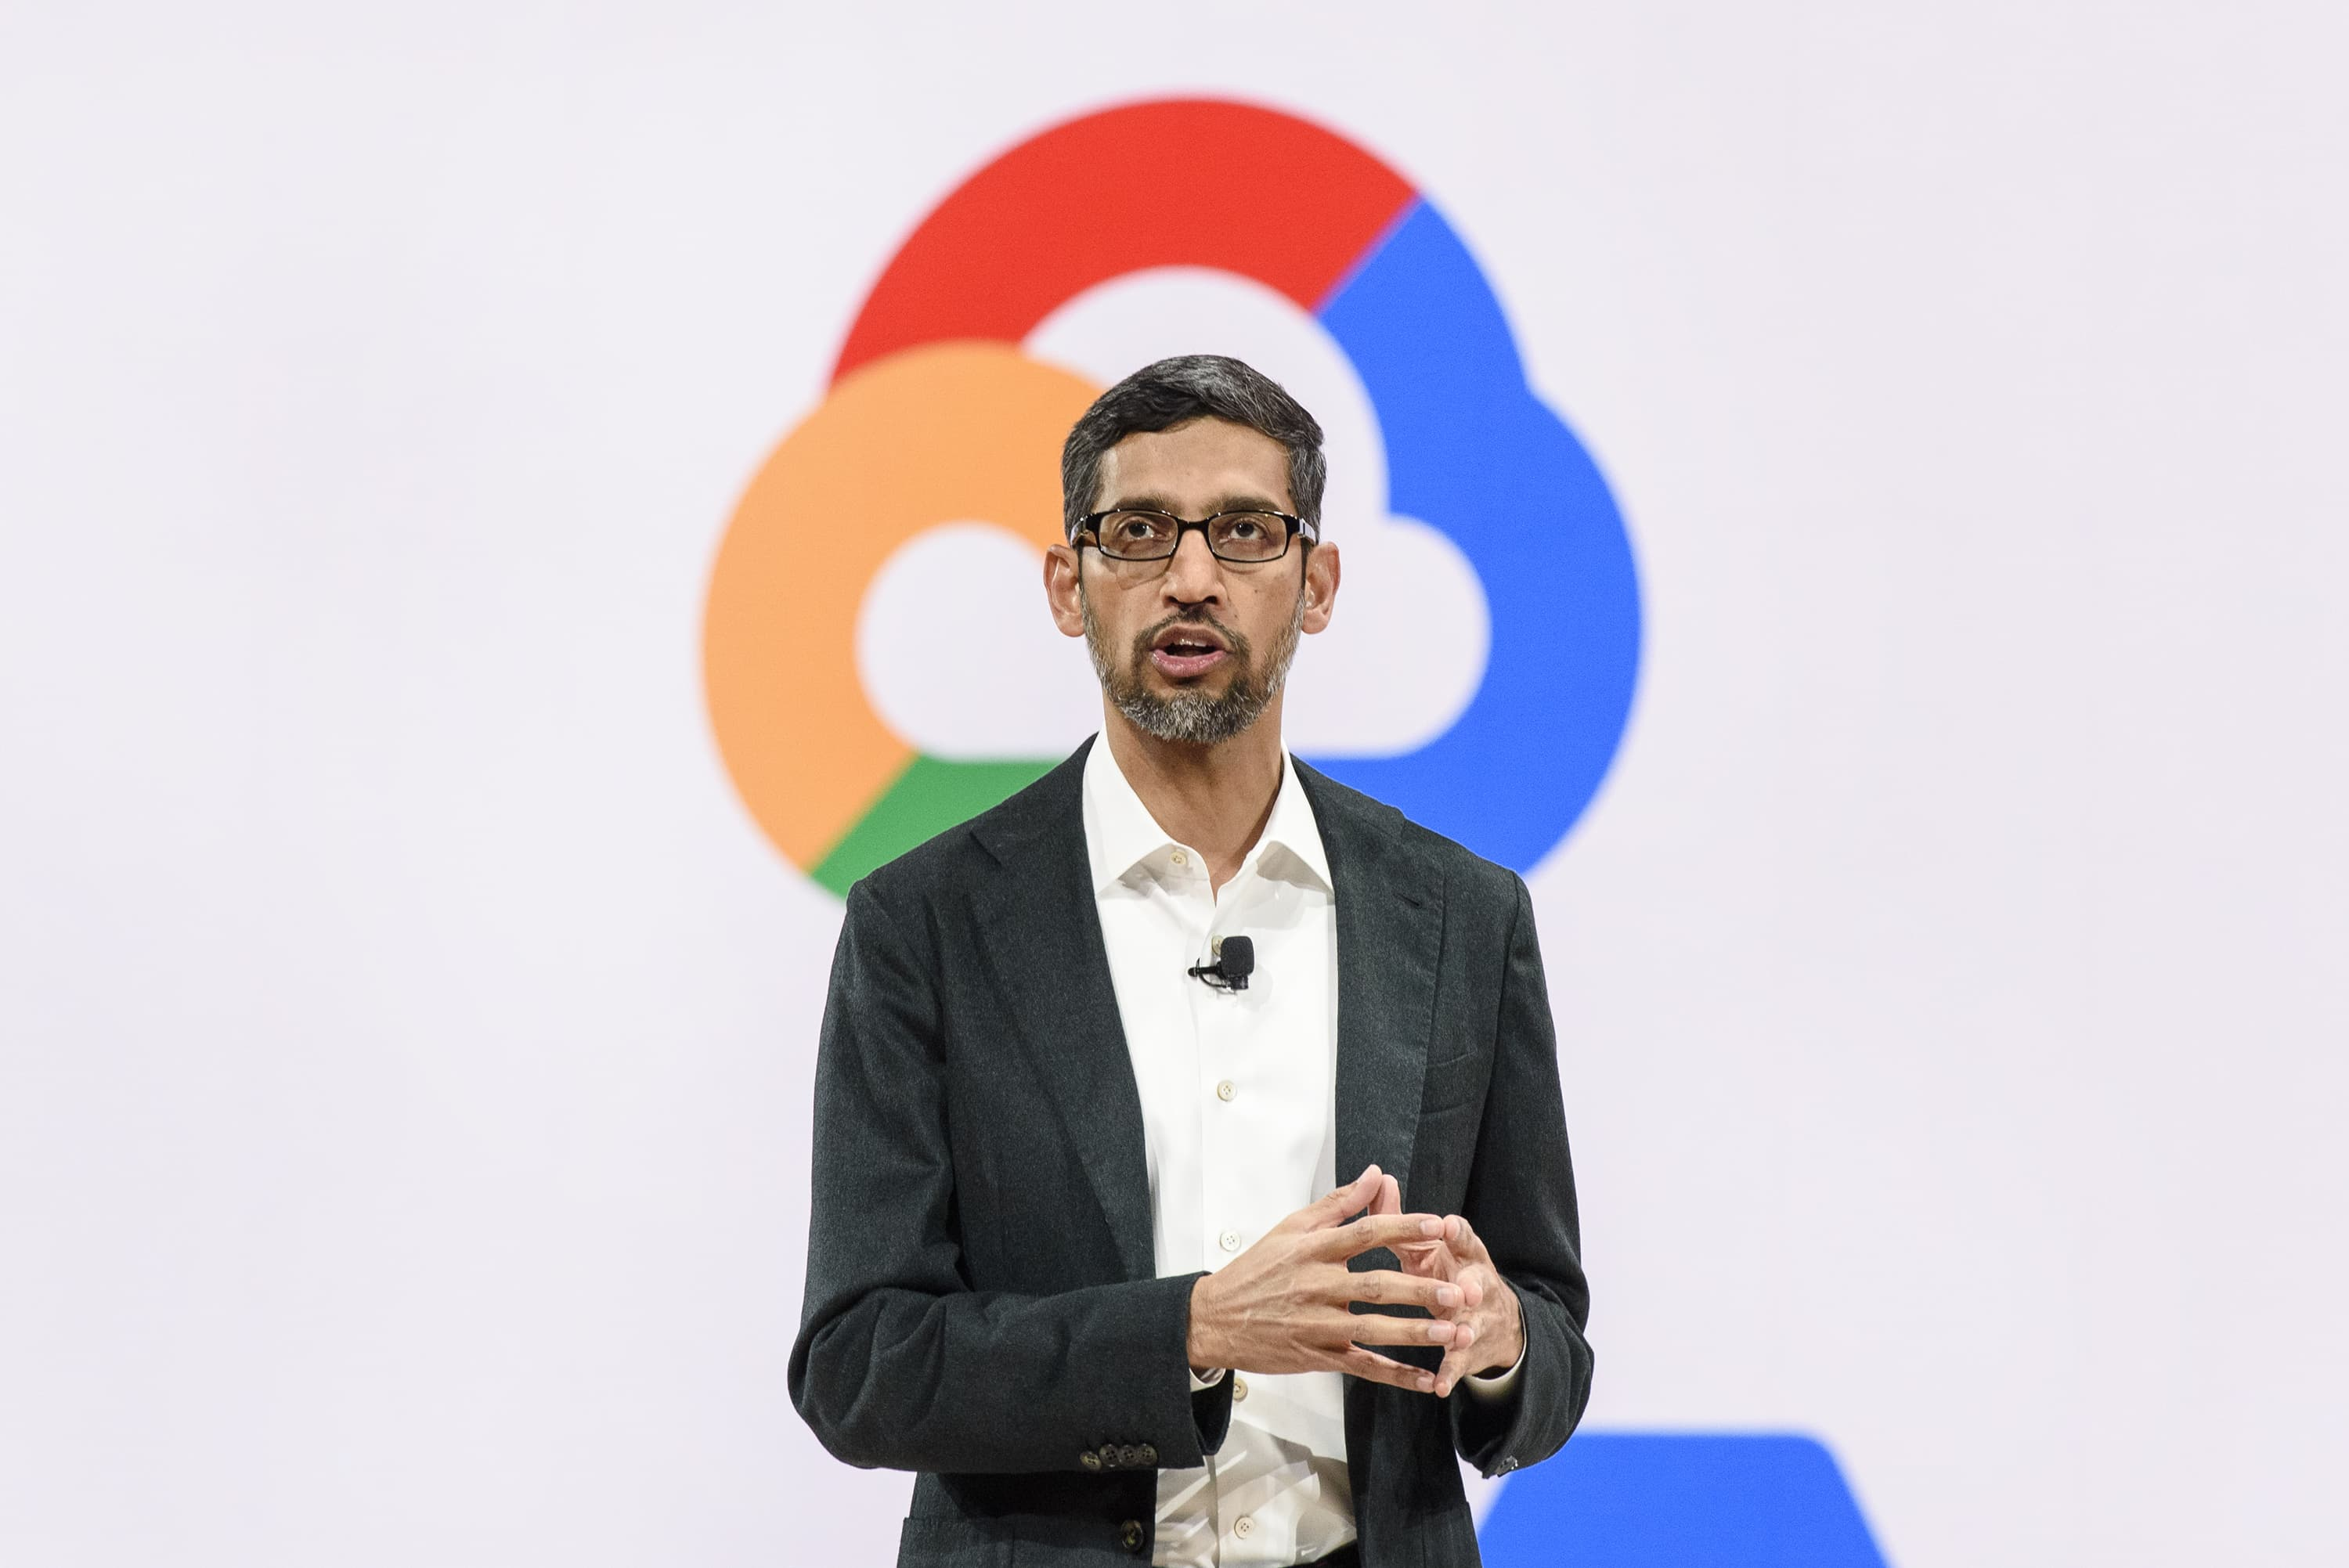 Google is getting into banking with the search giant reportedly offering checking accounts next year